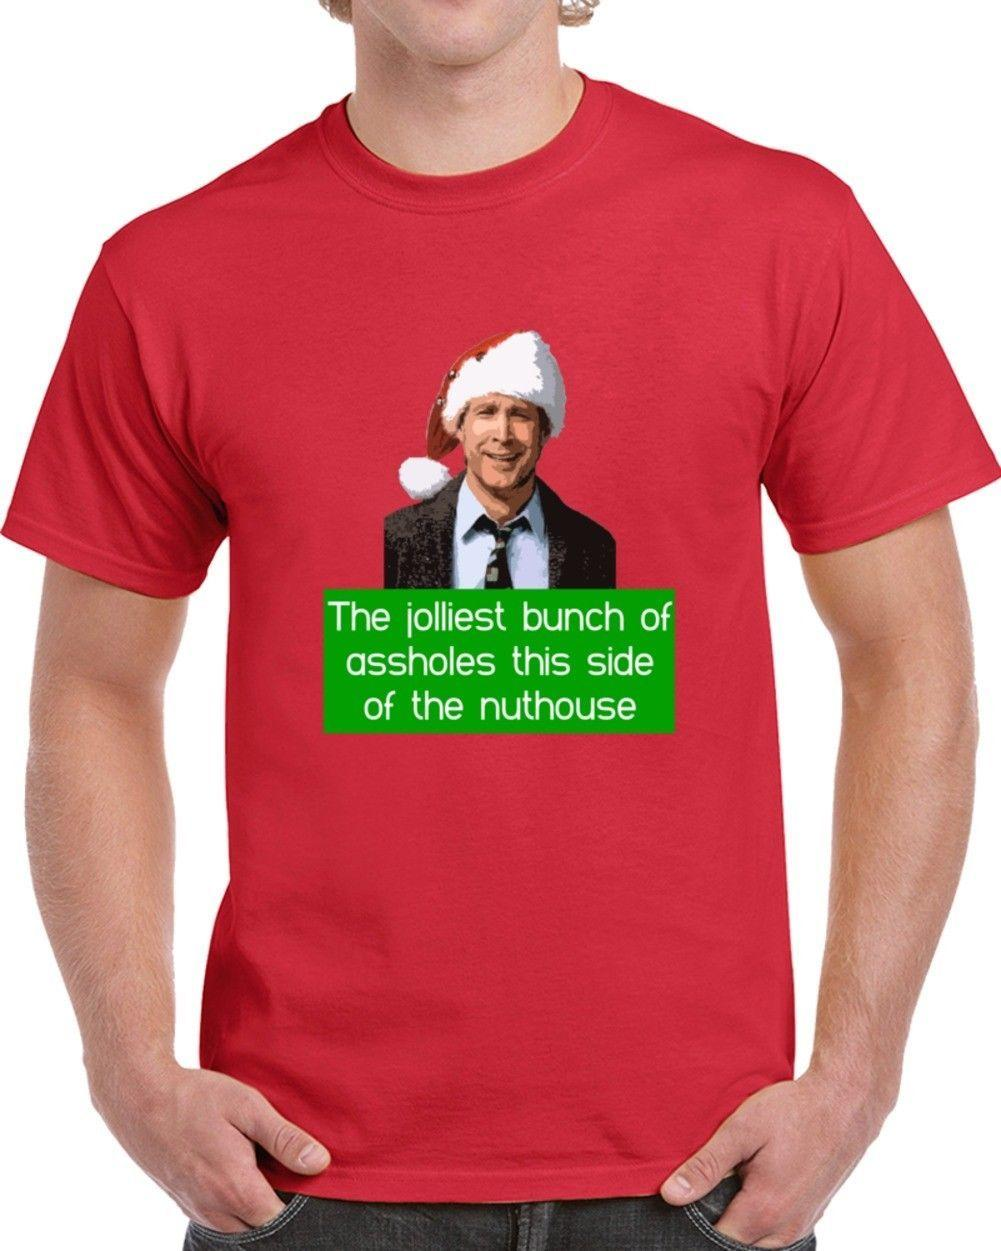 Model In Christmas Vacation.Clark Griswold Christmas Vacation Nuthouse Funny Movie Fan Quote Cool T Shirt Tops Summer Cool Funny T Shirt